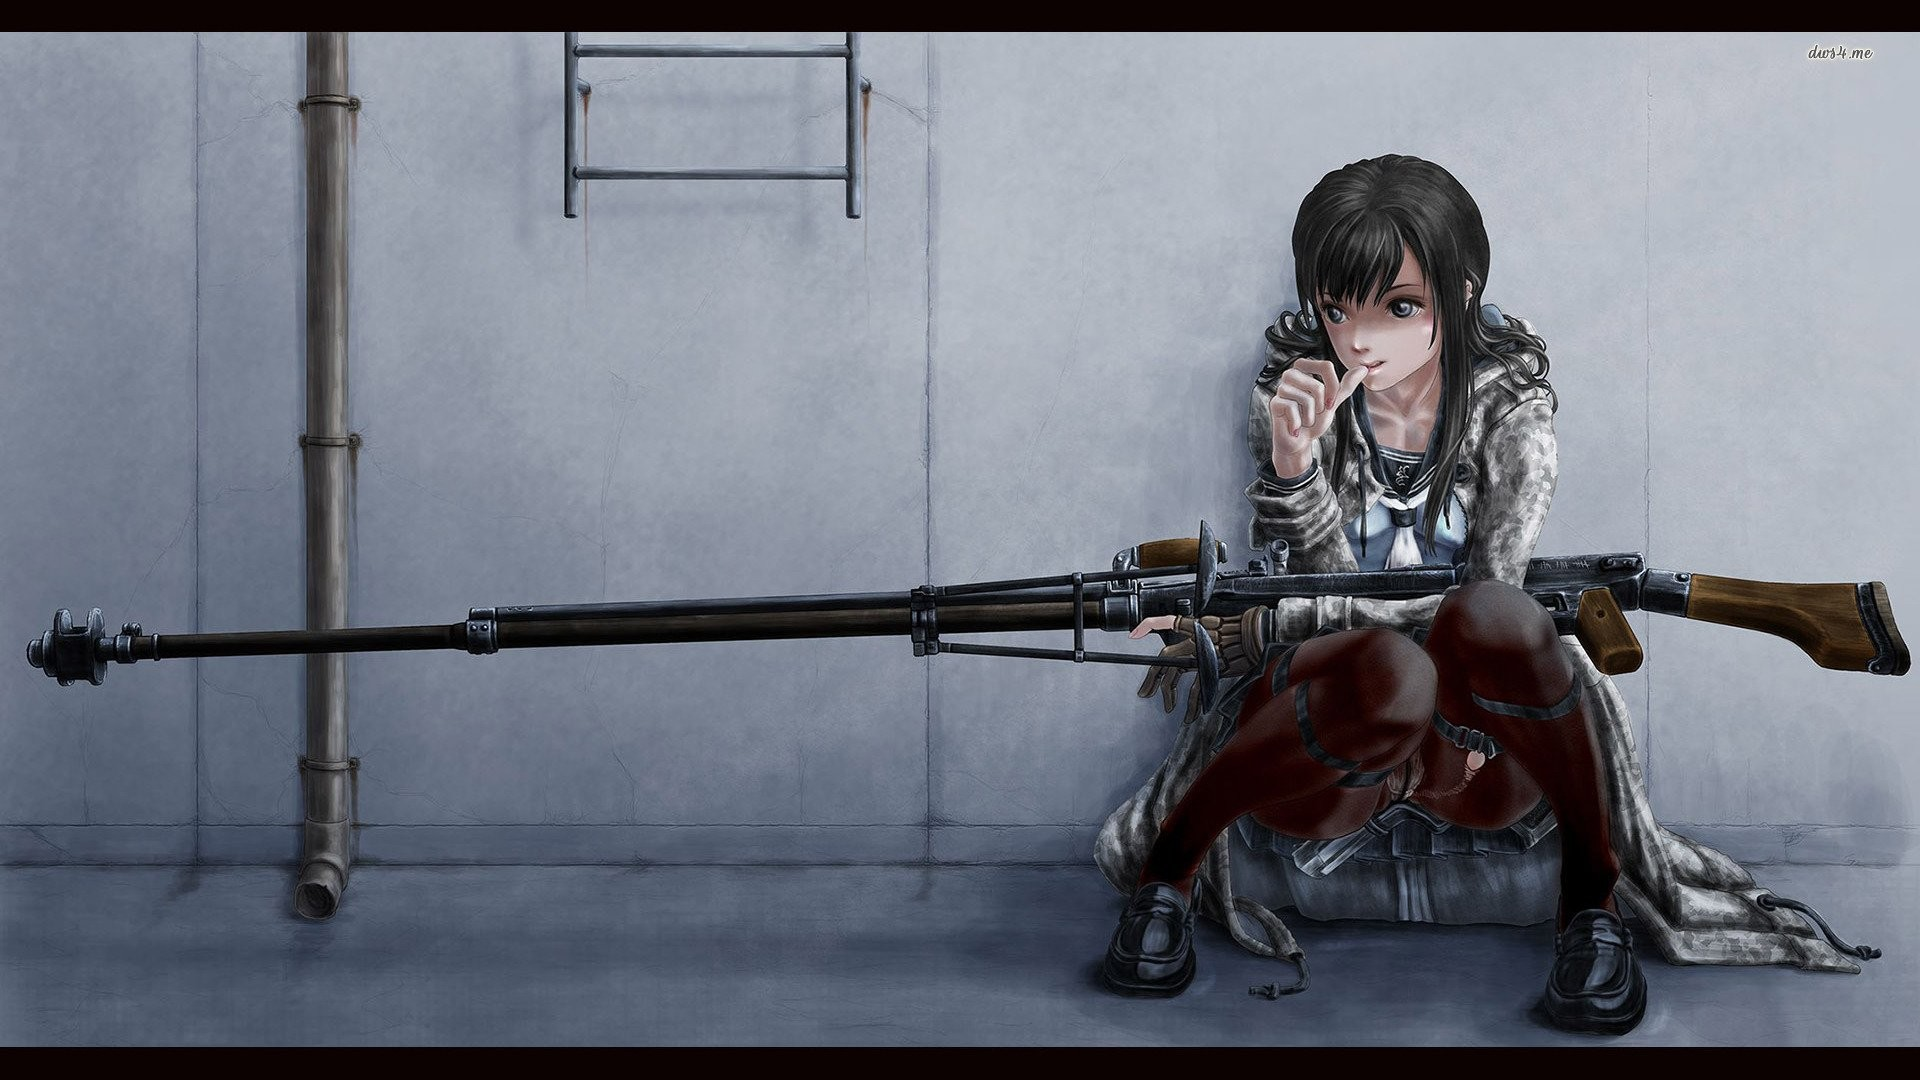 Sniper Rifle Snipers Artwork Wallpapers Hd Desktop And: Anime Sniper Wallpaper (62+ Images